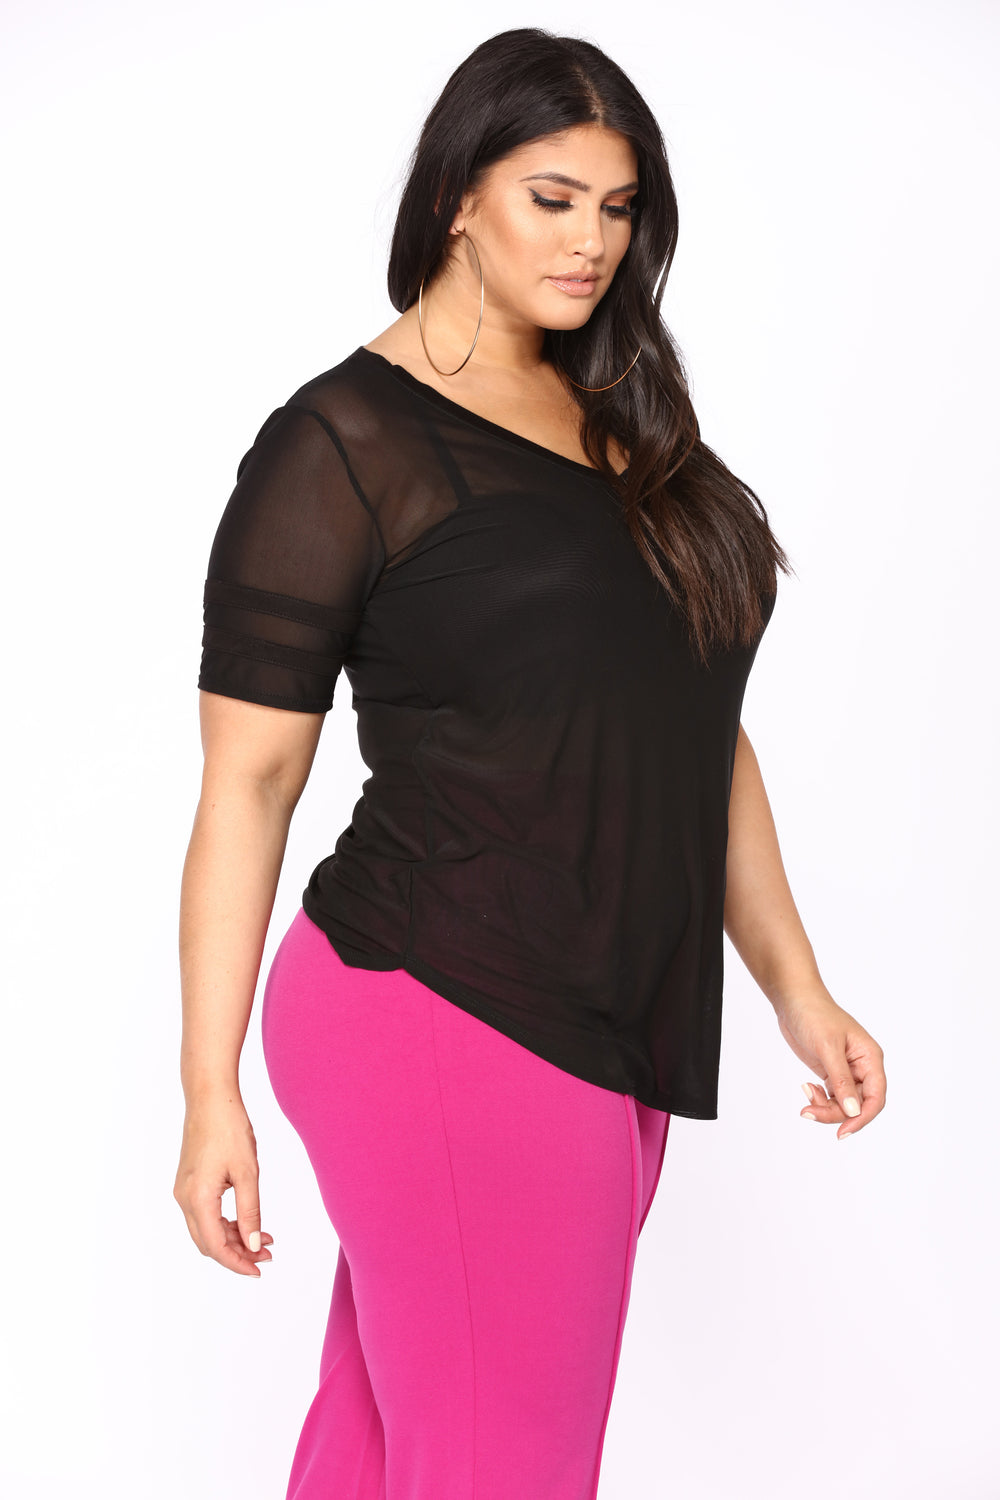 On Each Other's Team Mesh Top - Black